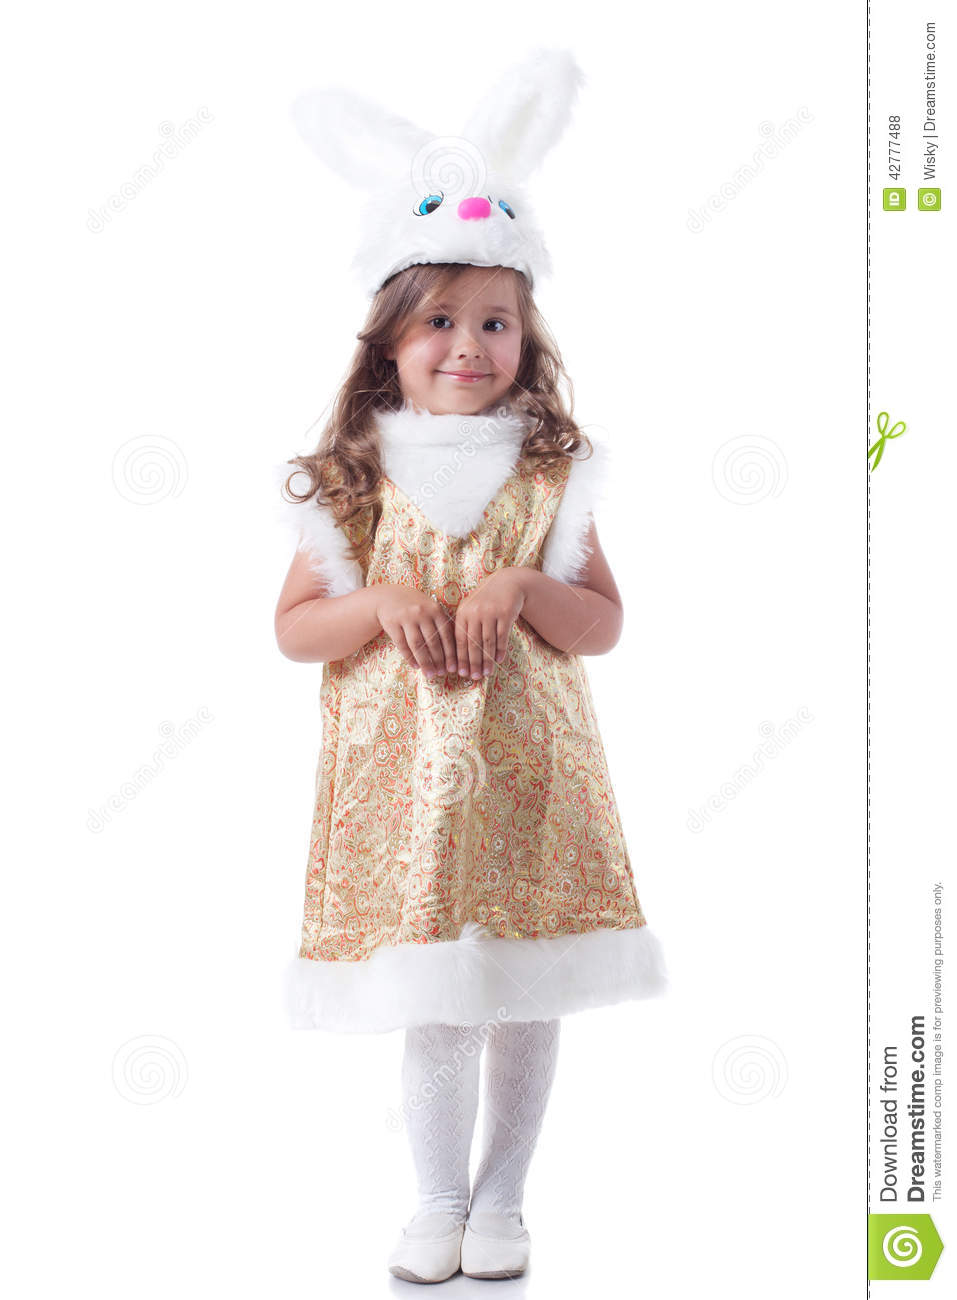 Adorable Little Girl Posing In Bunny Costume Stock Photo Image Of